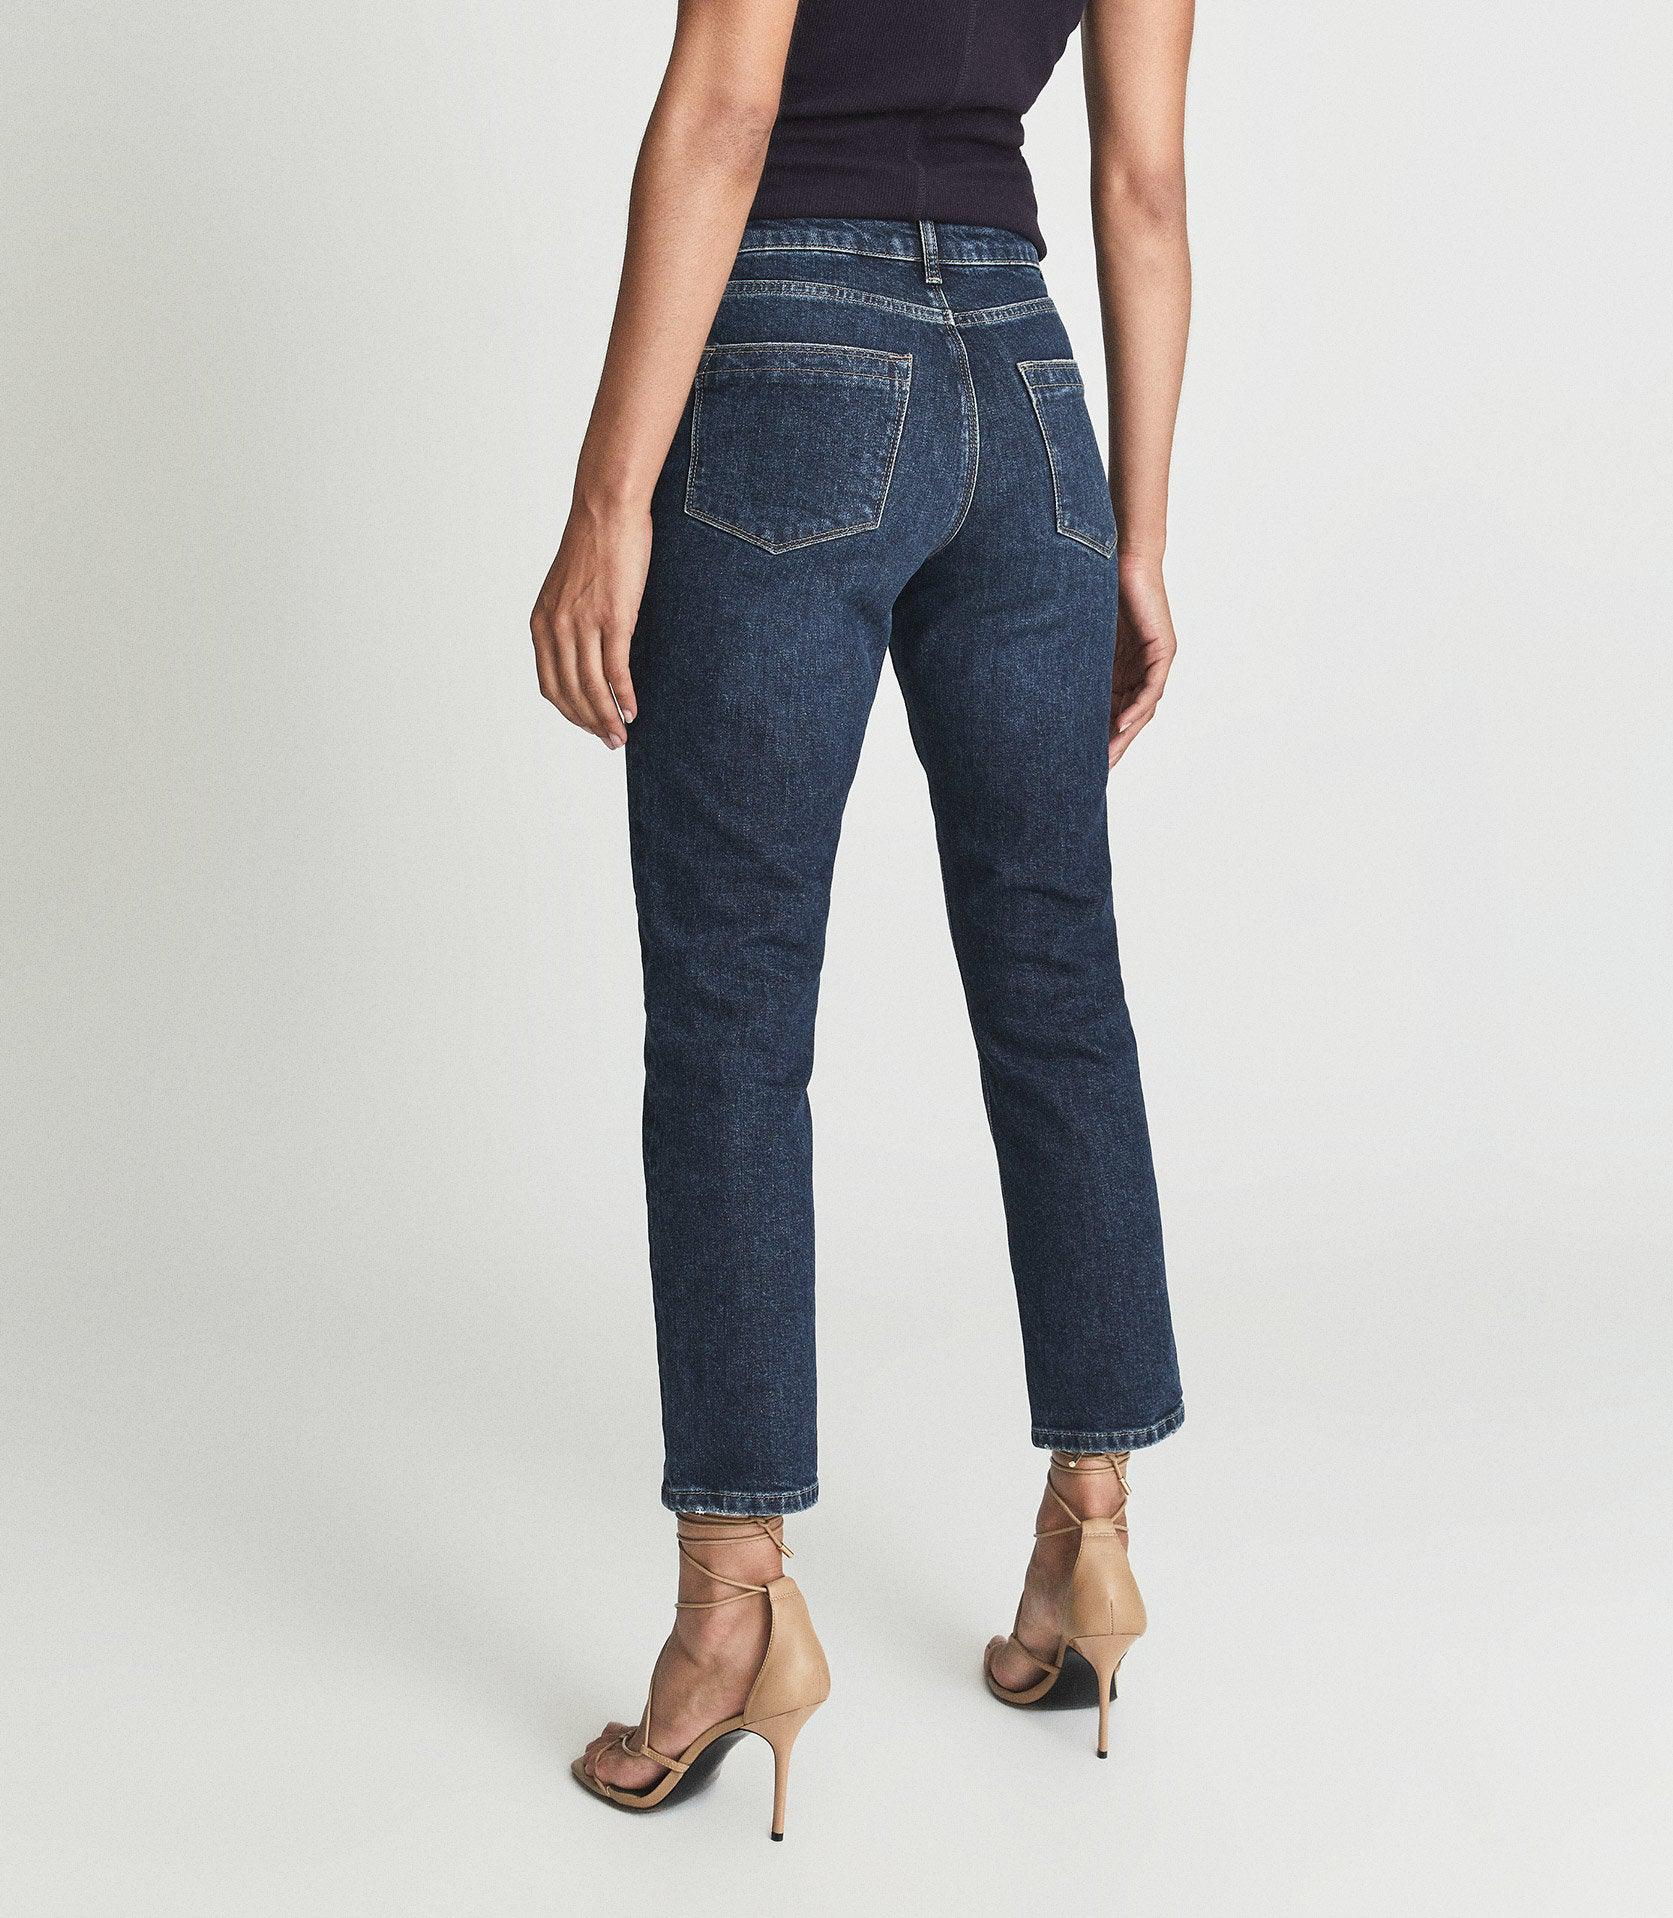 BAILEY - MID RISE SLIM CROPPED JEANS 2